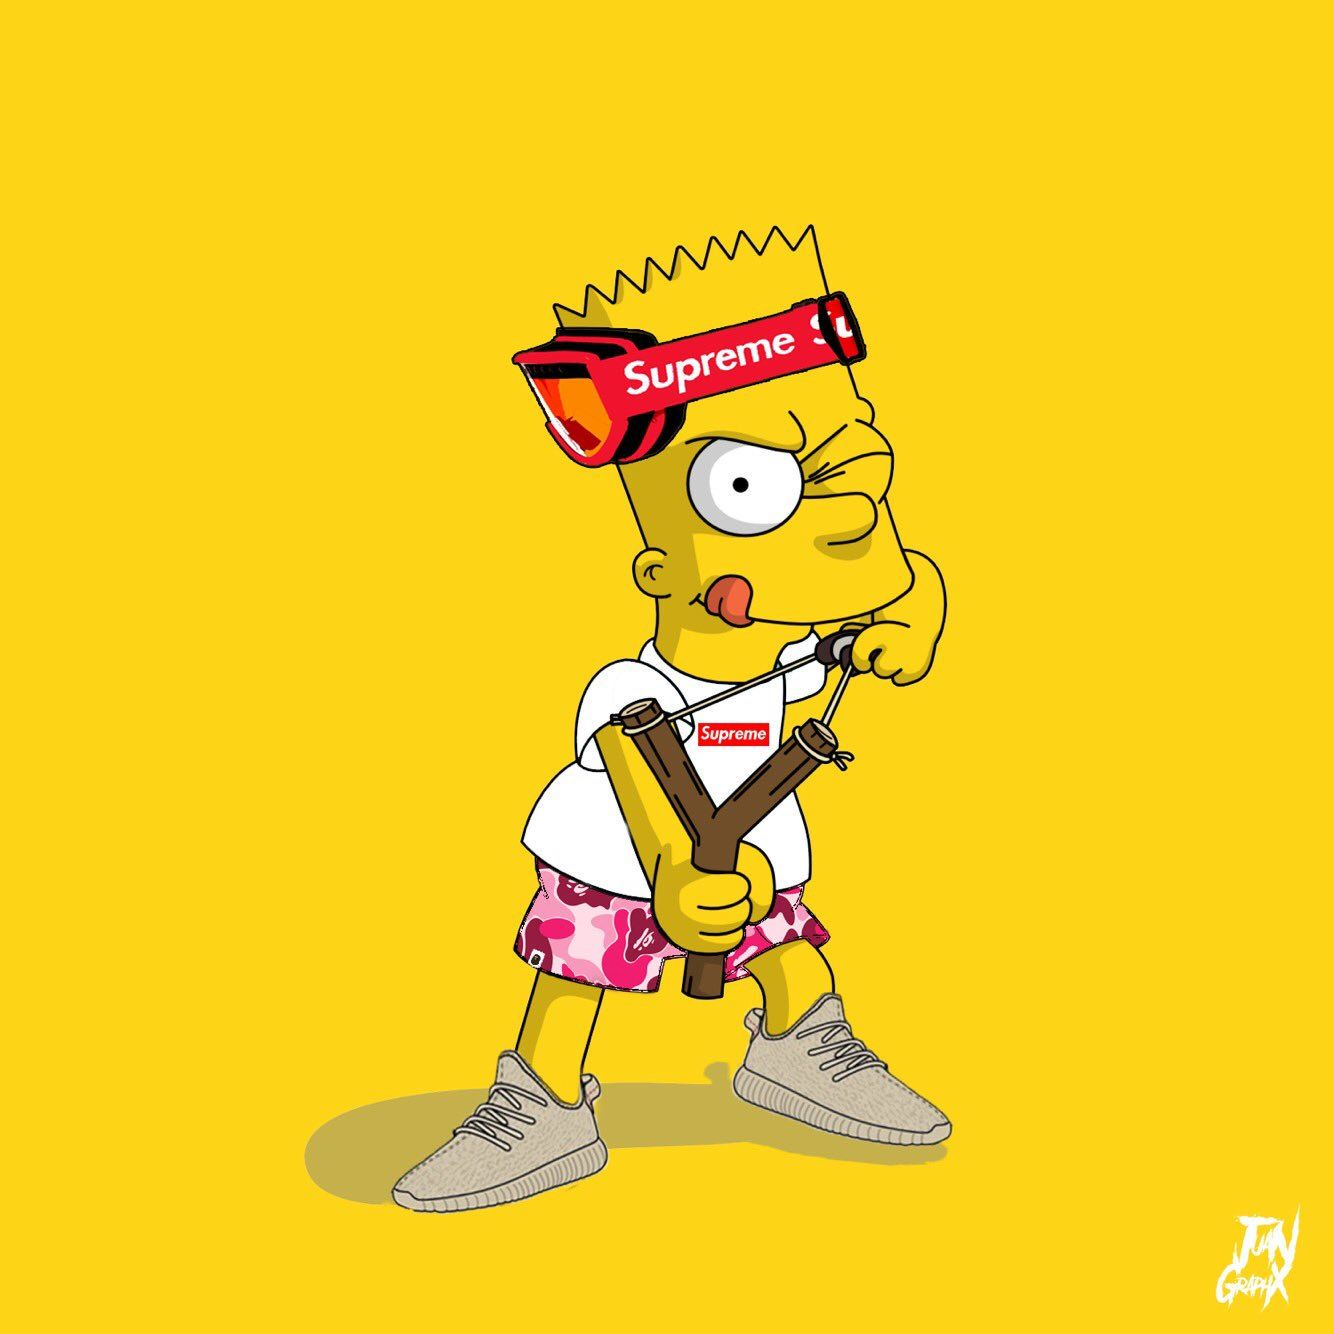 Supreme Bart Simpson Wallpapers - Top Free Supreme Bart Simpson